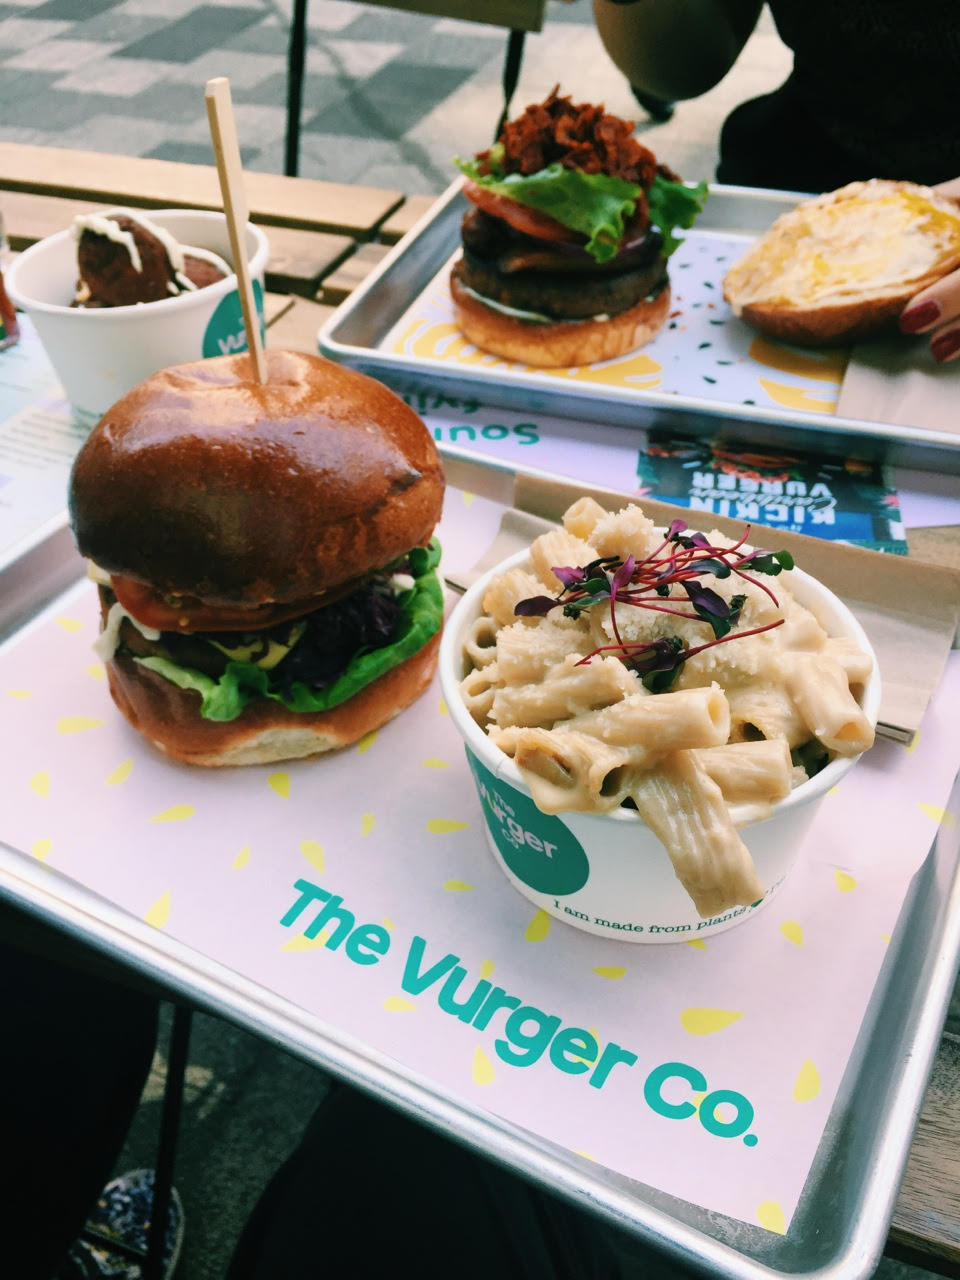 Auberger and Mac n Cheese from the Vurger Co